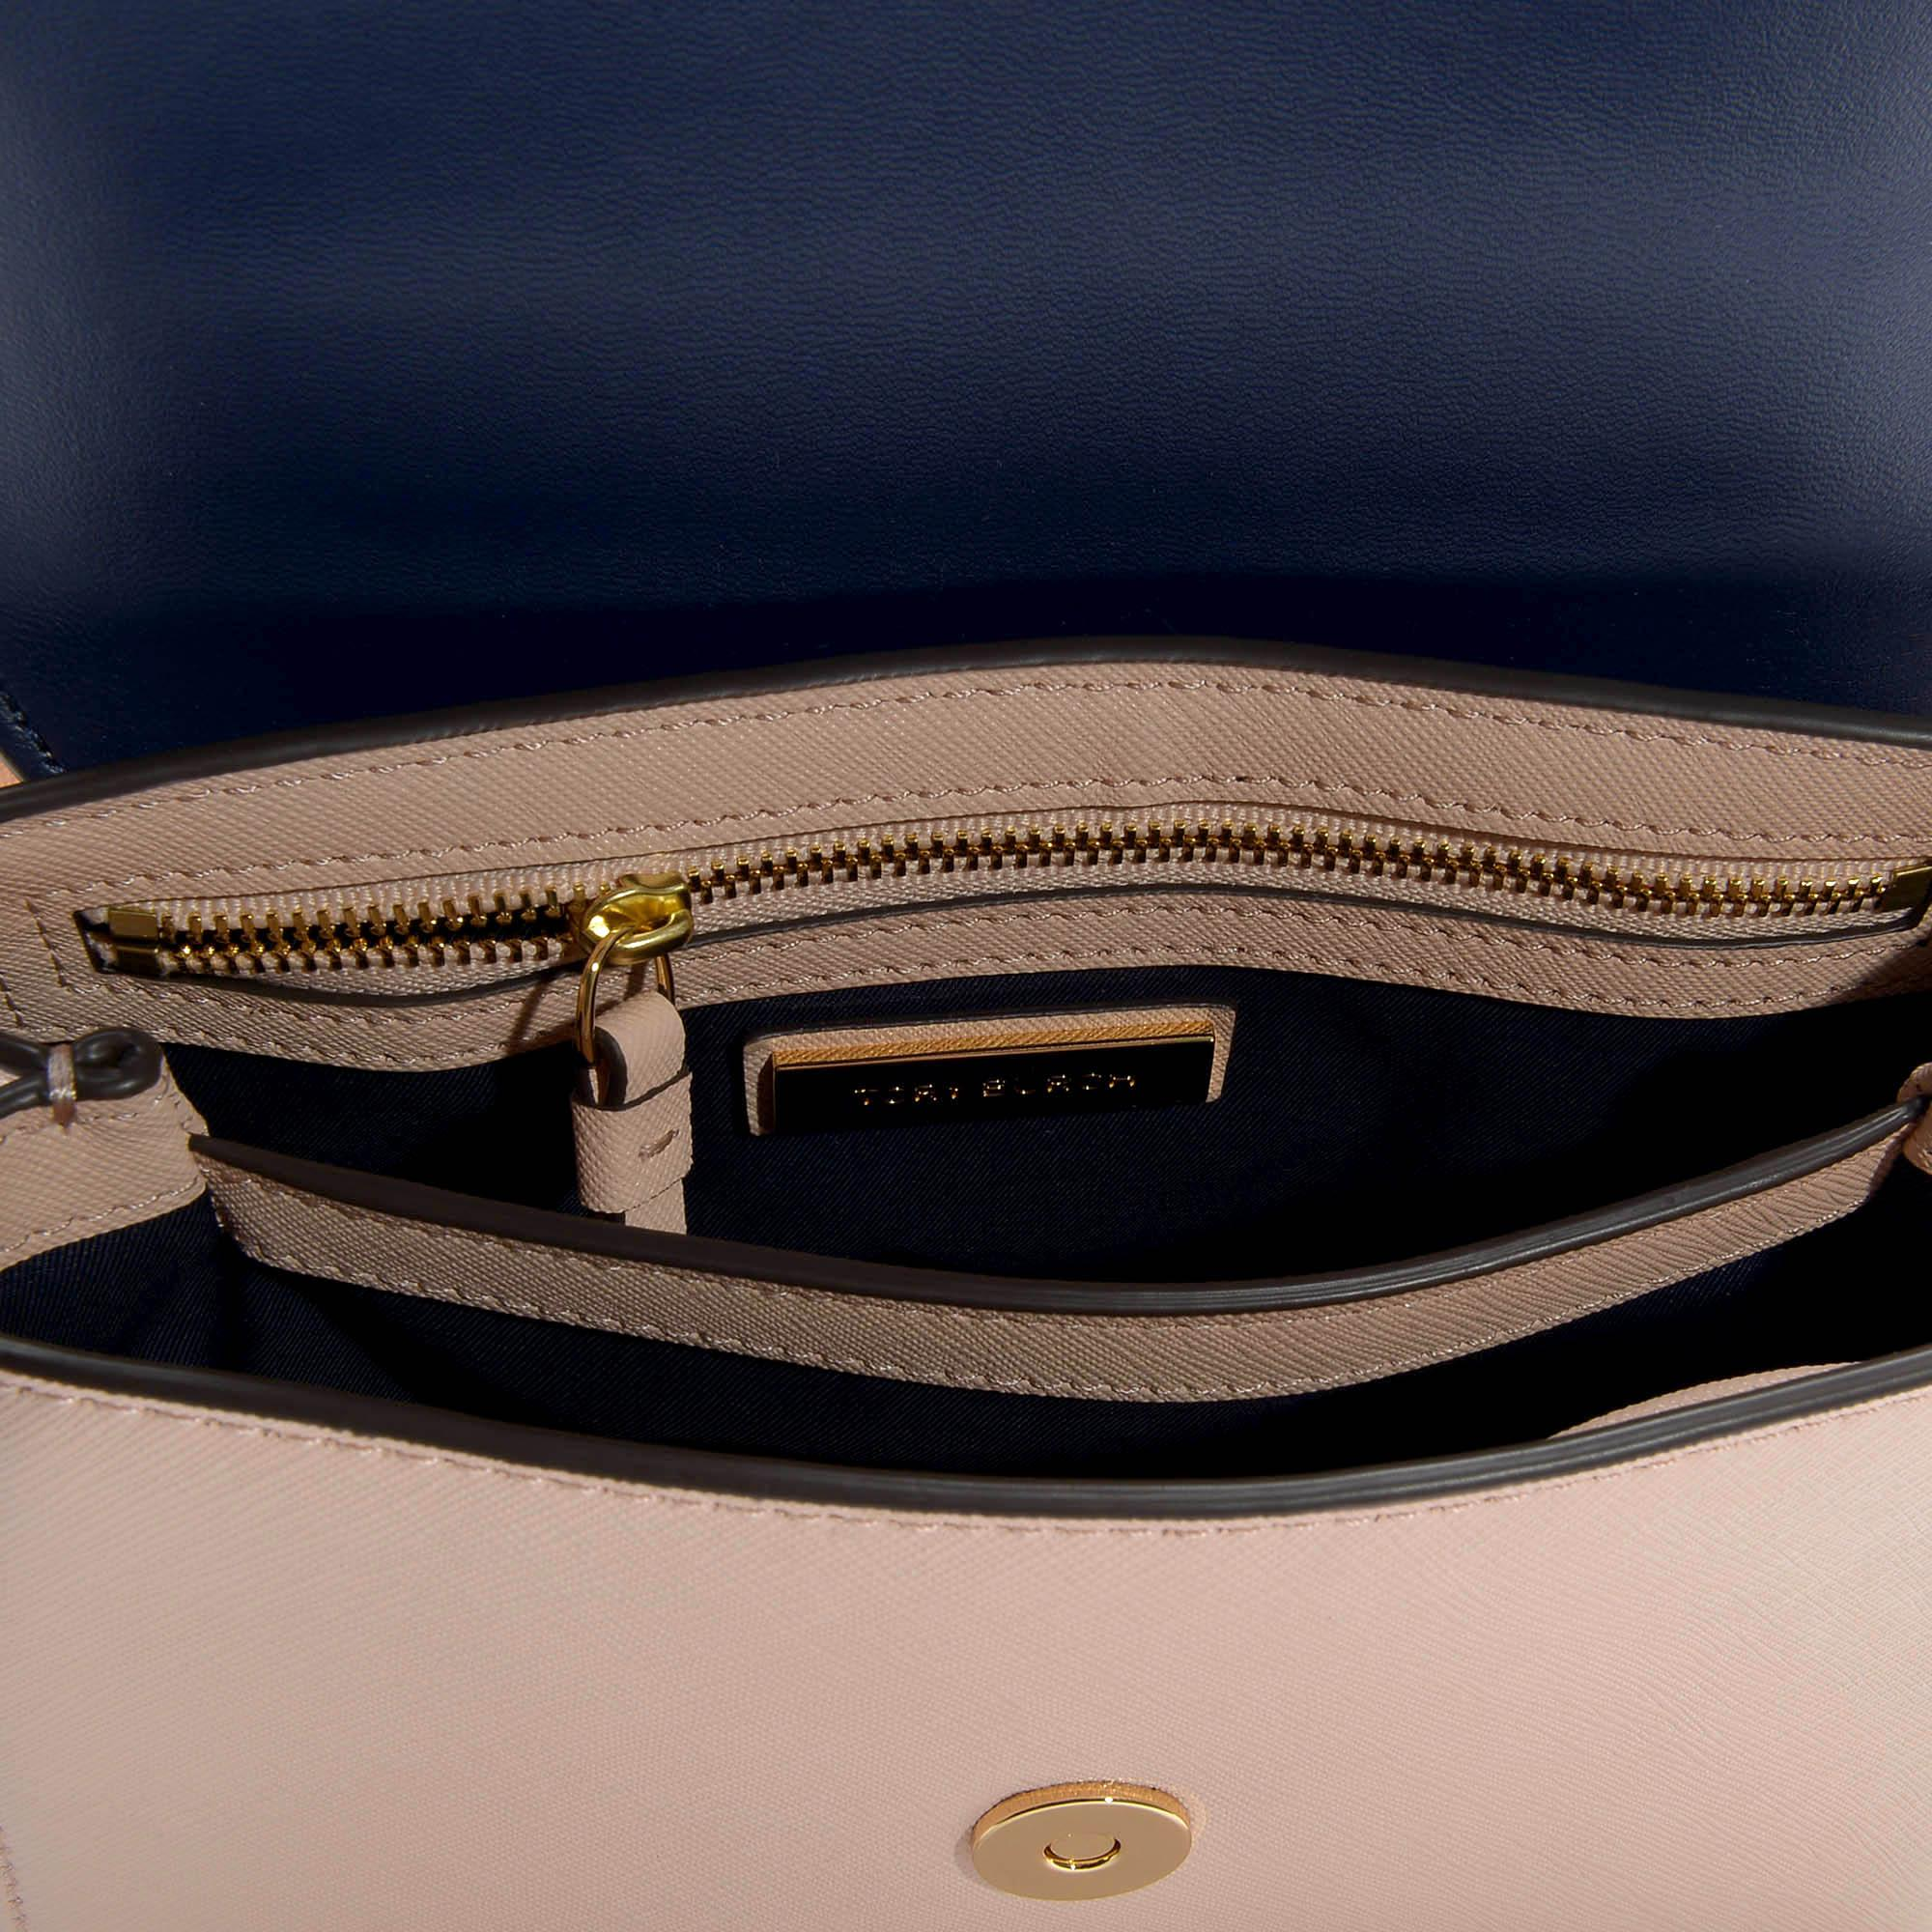 d3ec7c9ccedc Tory Burch - Pink Robinson Small Top-handle Satchel In Pale Apricot And  Royal Navy. View fullscreen